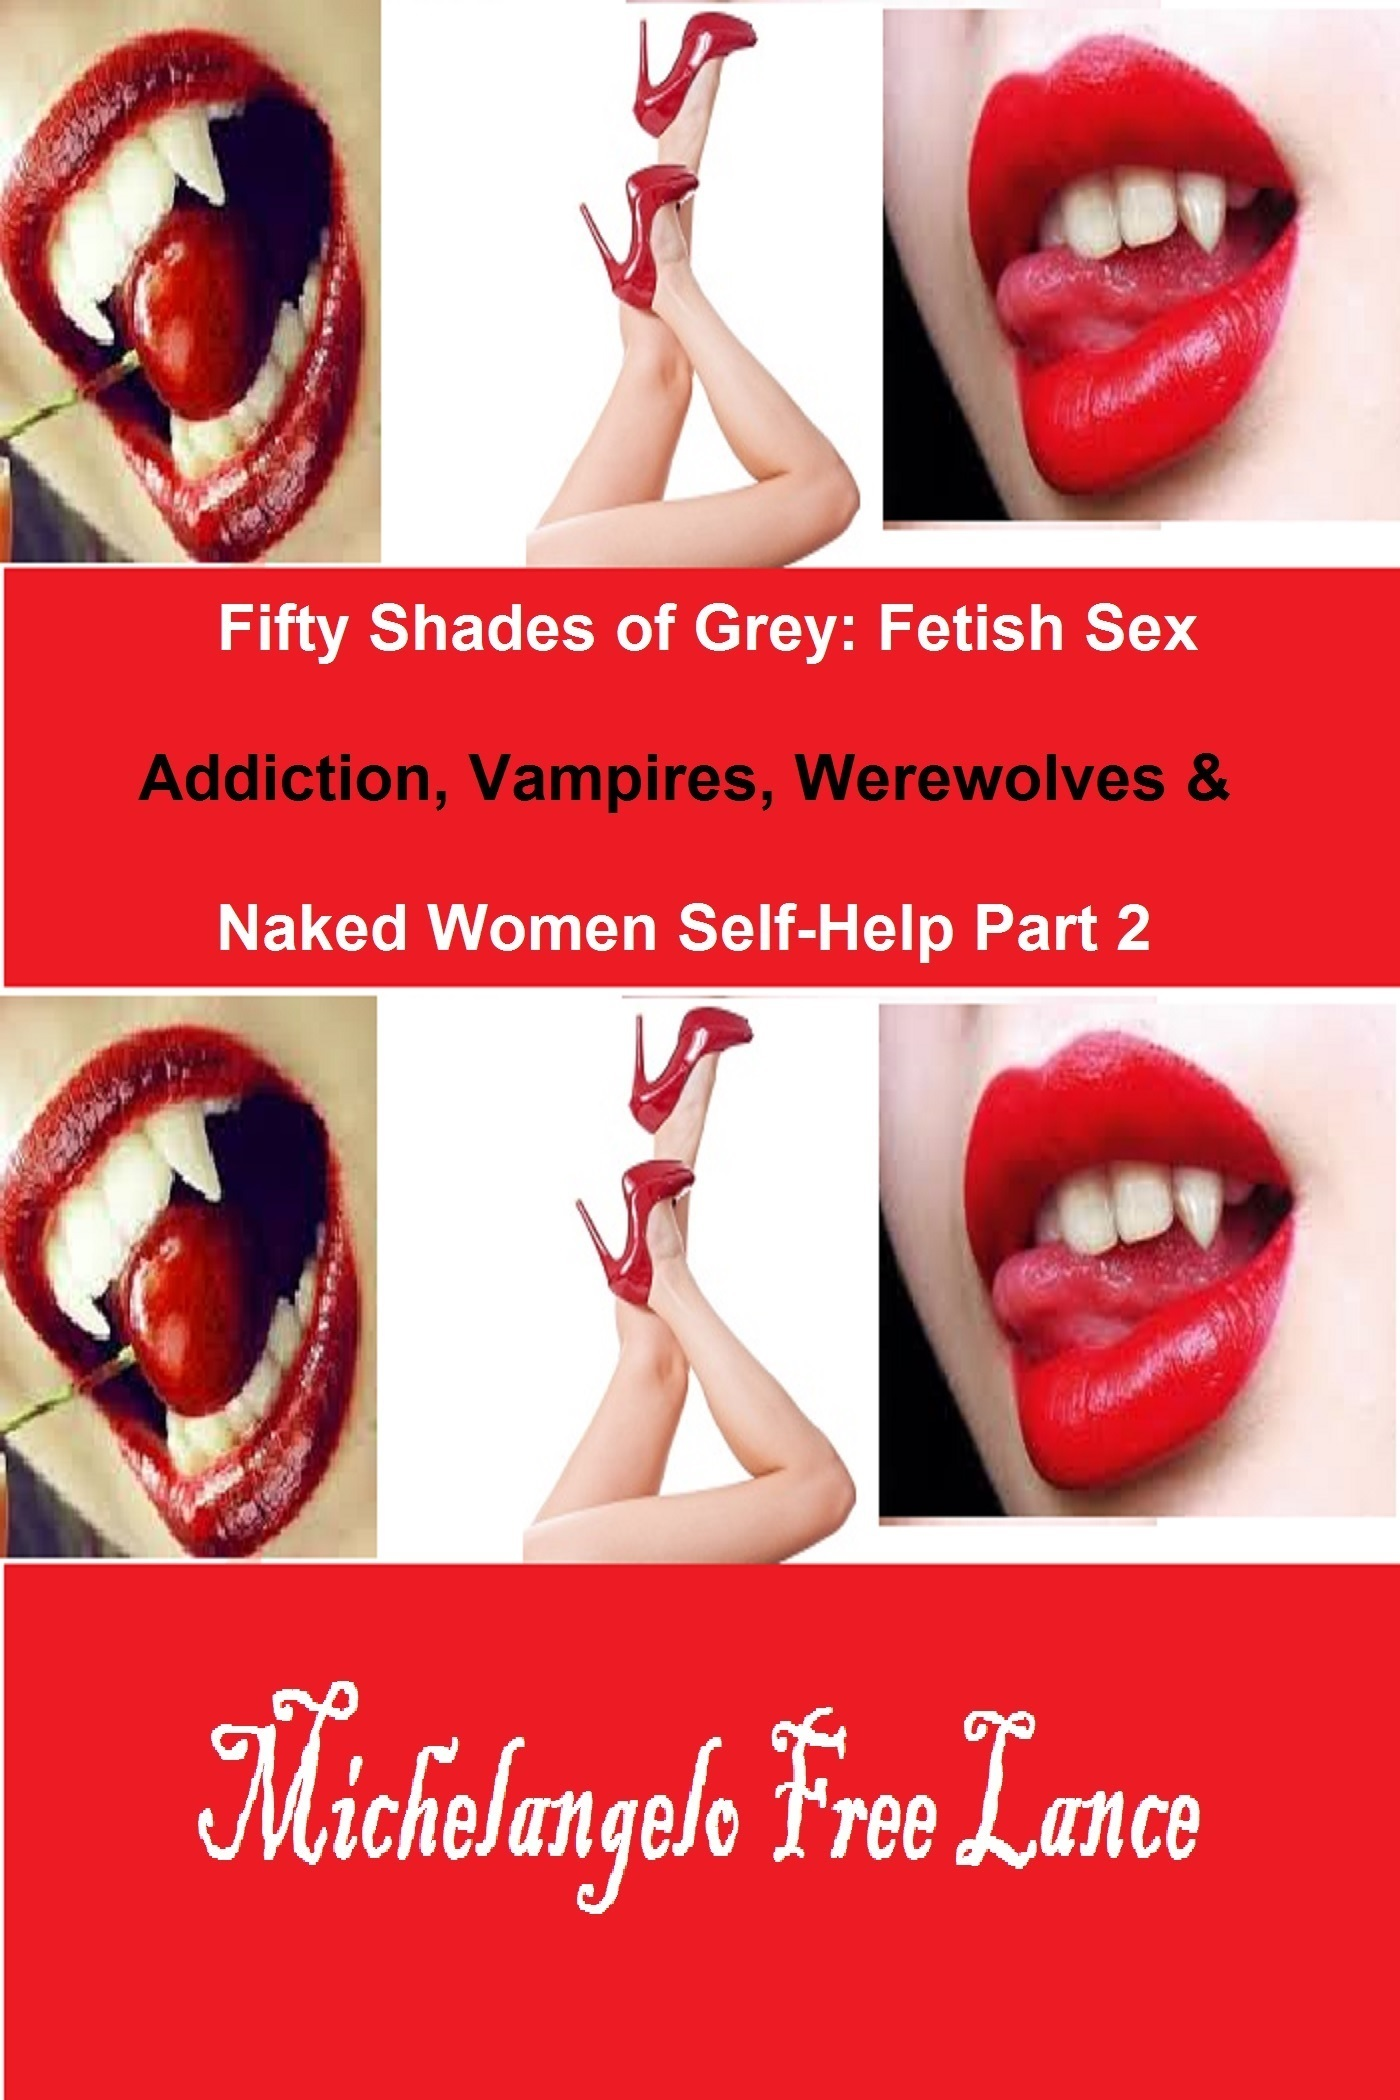 Fifty Shades of Grey: Fetish Sex Addiction, Vampires, Werewolves & Naked Women Self-Help Part 2